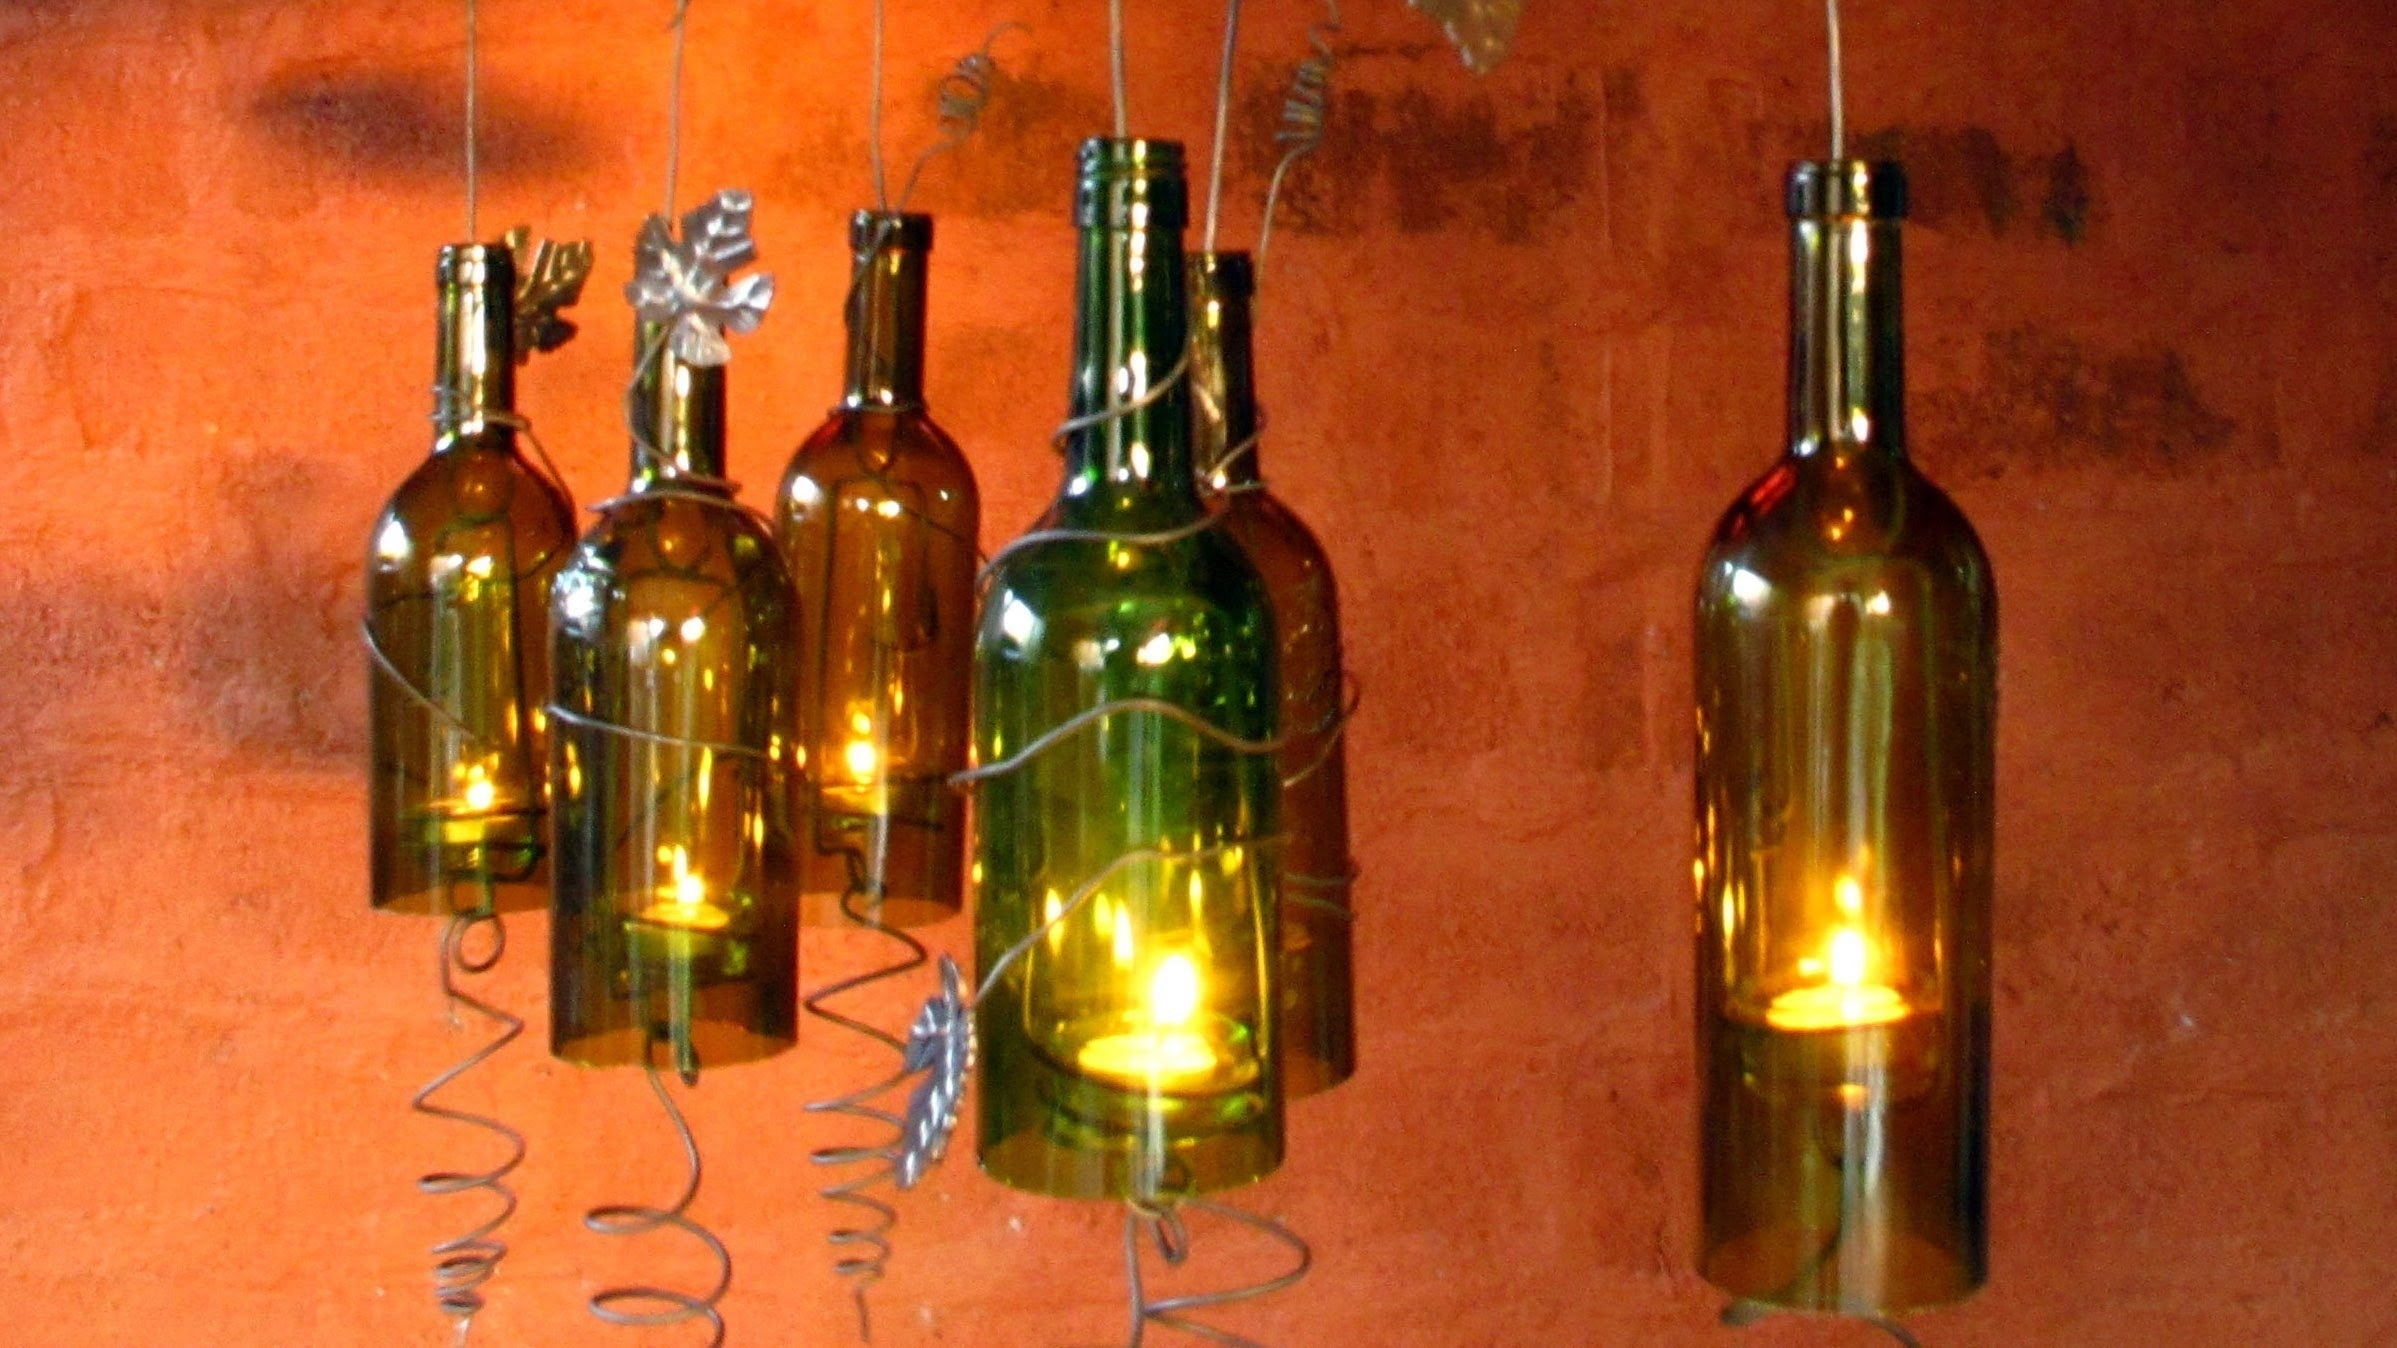 Recycled Wine Bottles Made Into A Hurricane Candle Holder, Diy Video Within Making Outdoor Hanging Lights From Wine Bottles (#13 of 15)